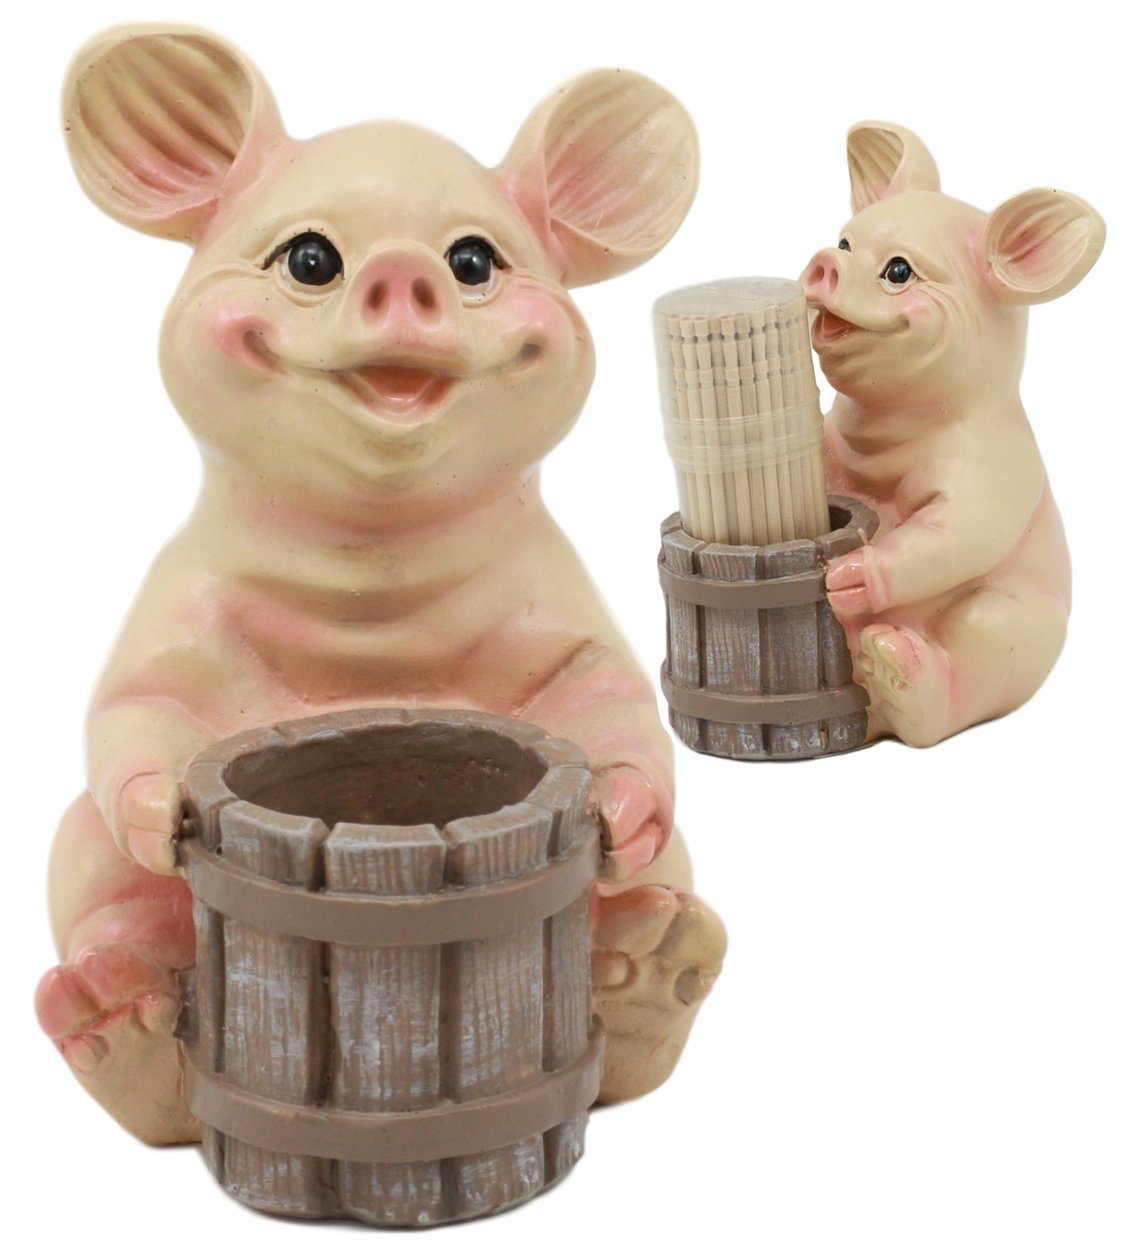 Ebros Country Farmland Barn Piglet Pig Toothpick Holder Statue 3.75''Tall With Toothpicks Babe Pig Figurine Excellent Present For Farmers Barn Animal Lovers Cute Home Kitchen Decor by Ebros Gift (Image #1)